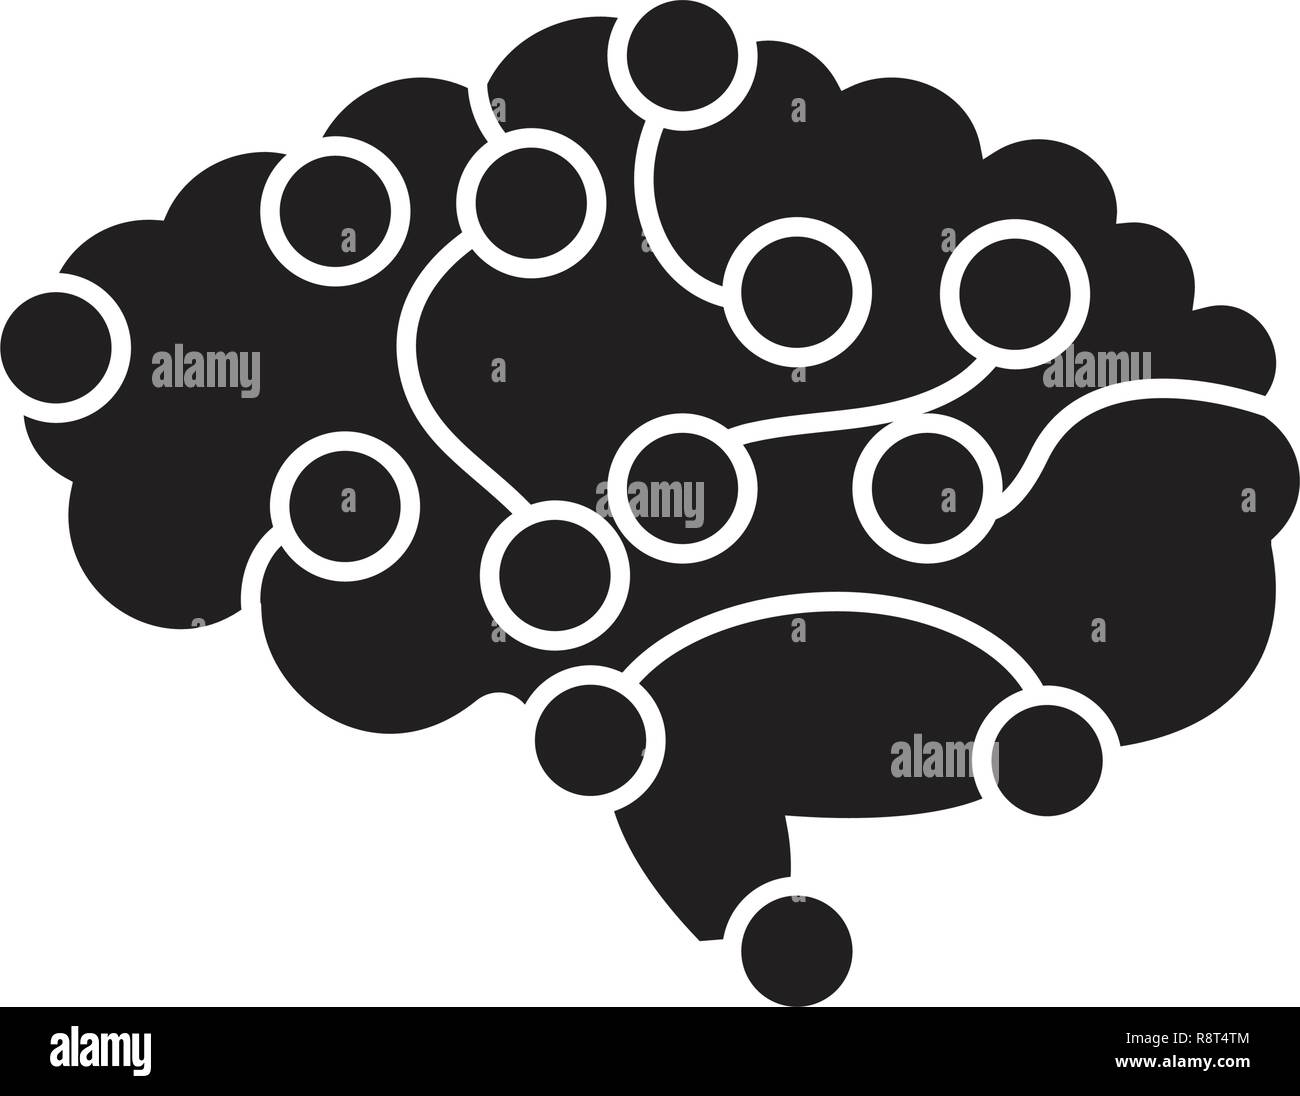 Brain power black vector concept icon. Brain power flat illustration, sign - Stock Image